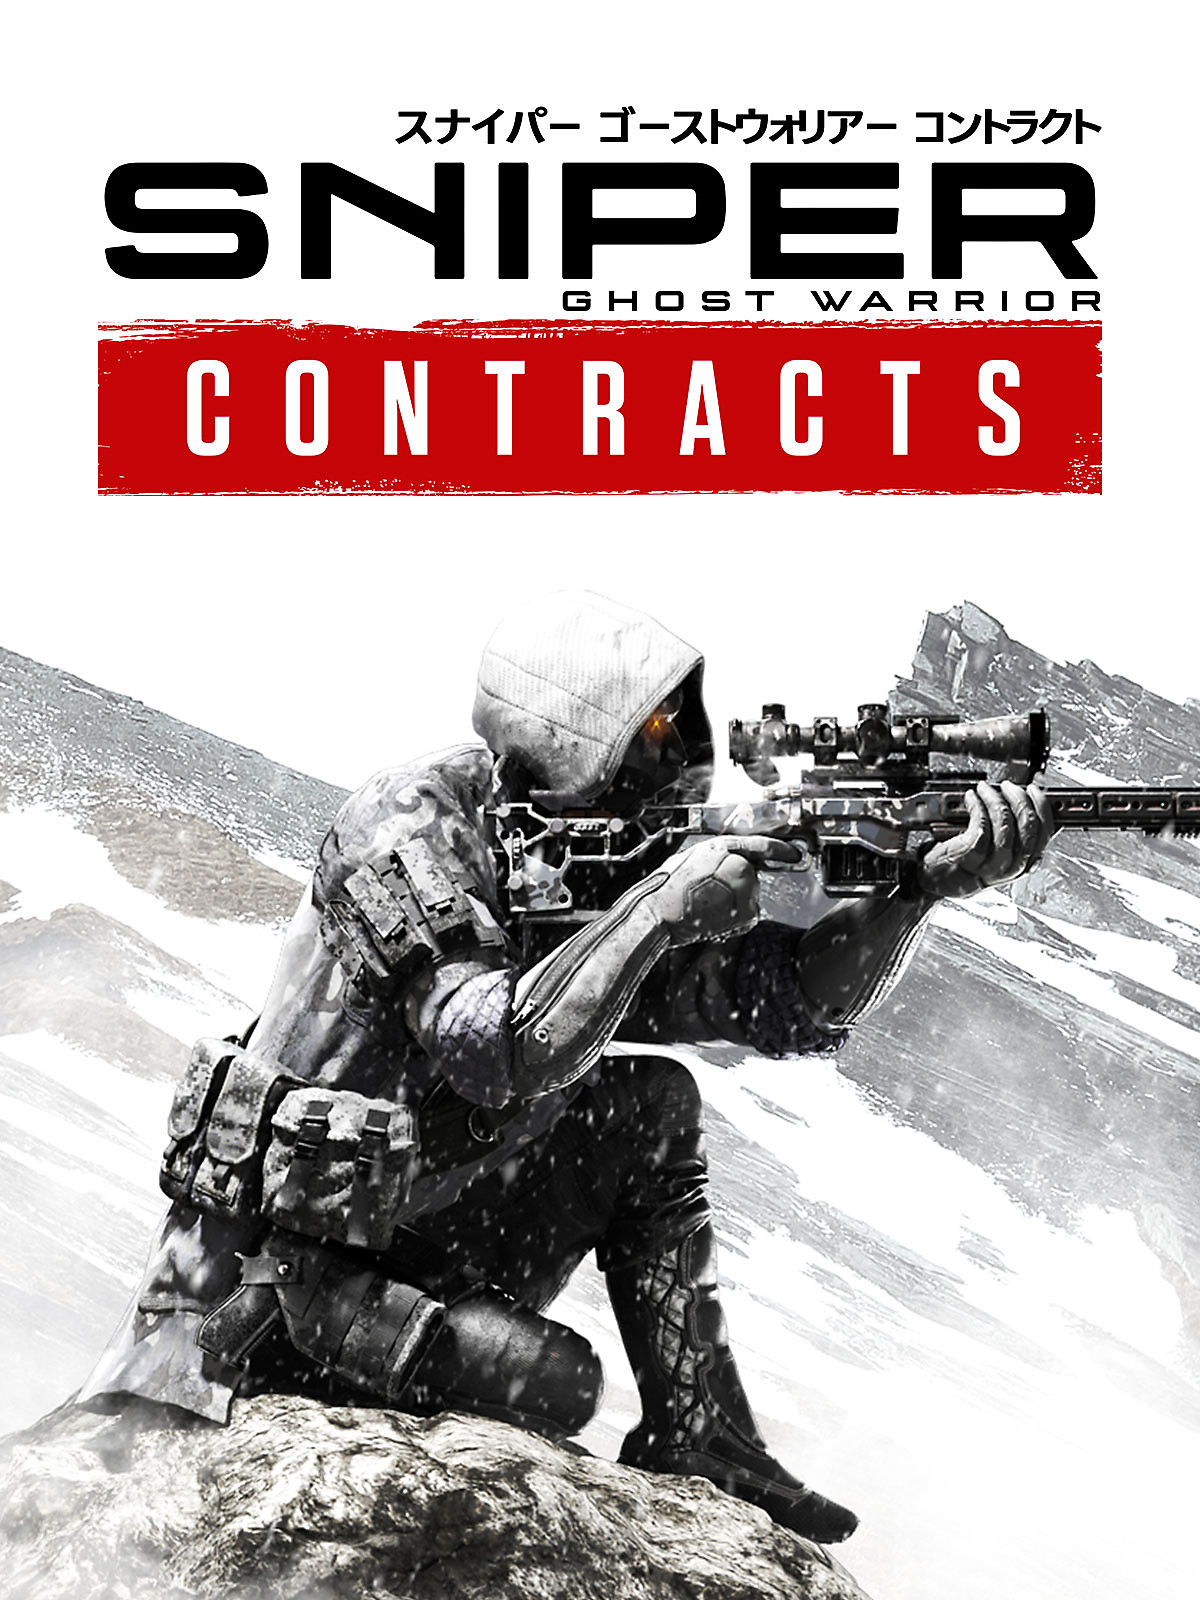 Sniper Ghost Warrior Contracts Poster Art